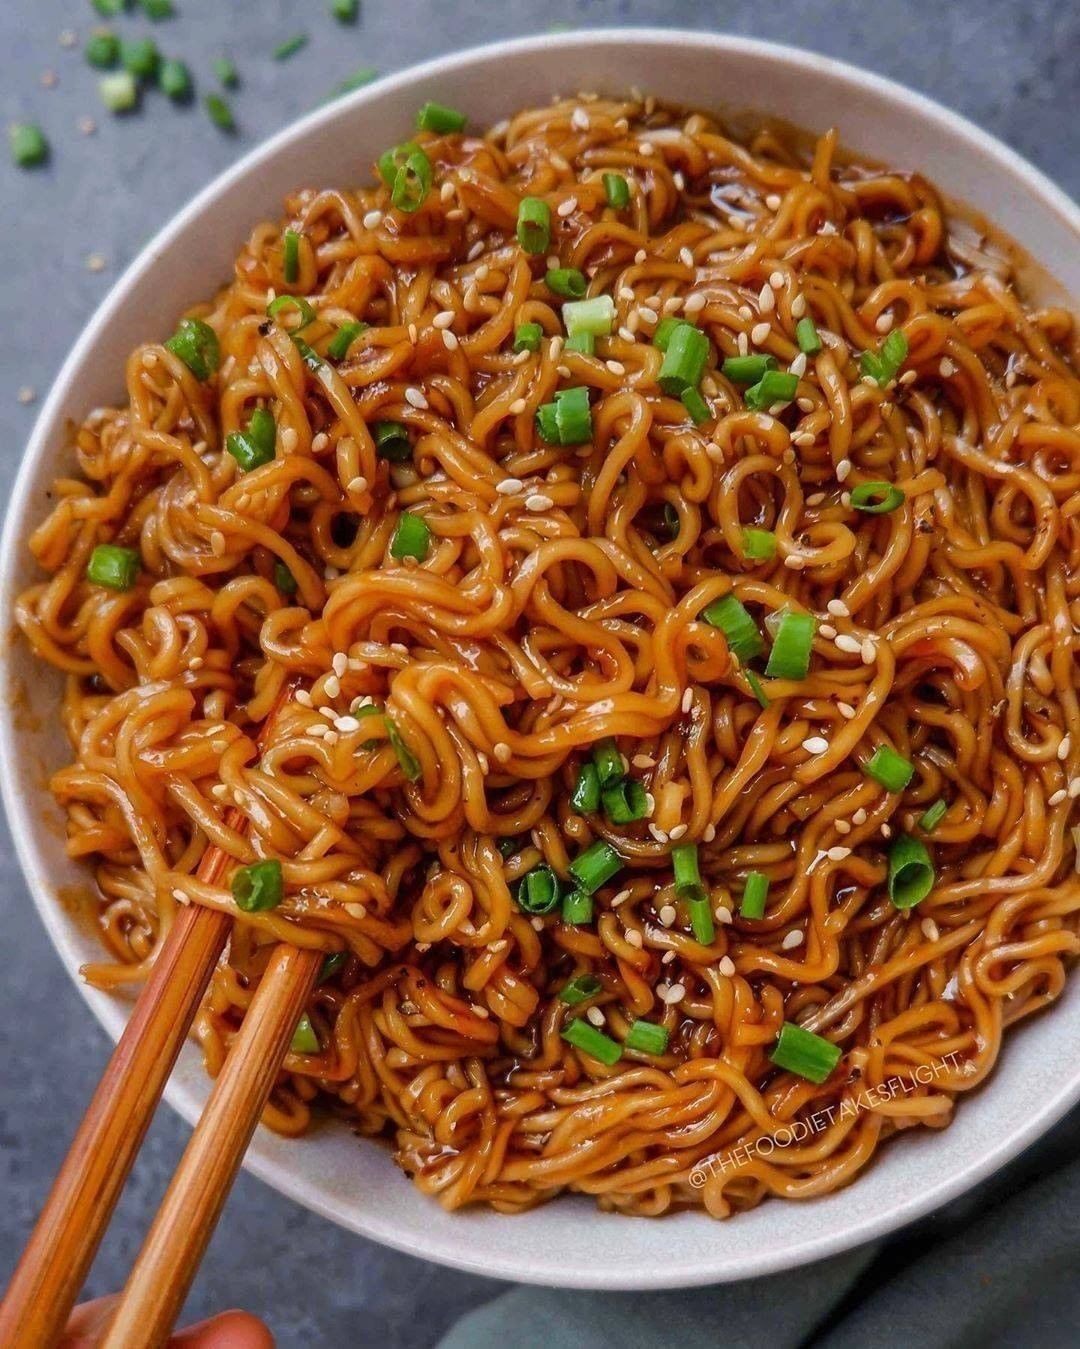 easy saucy ramen noodles  by thefoodietakesflight display image  6293ac33